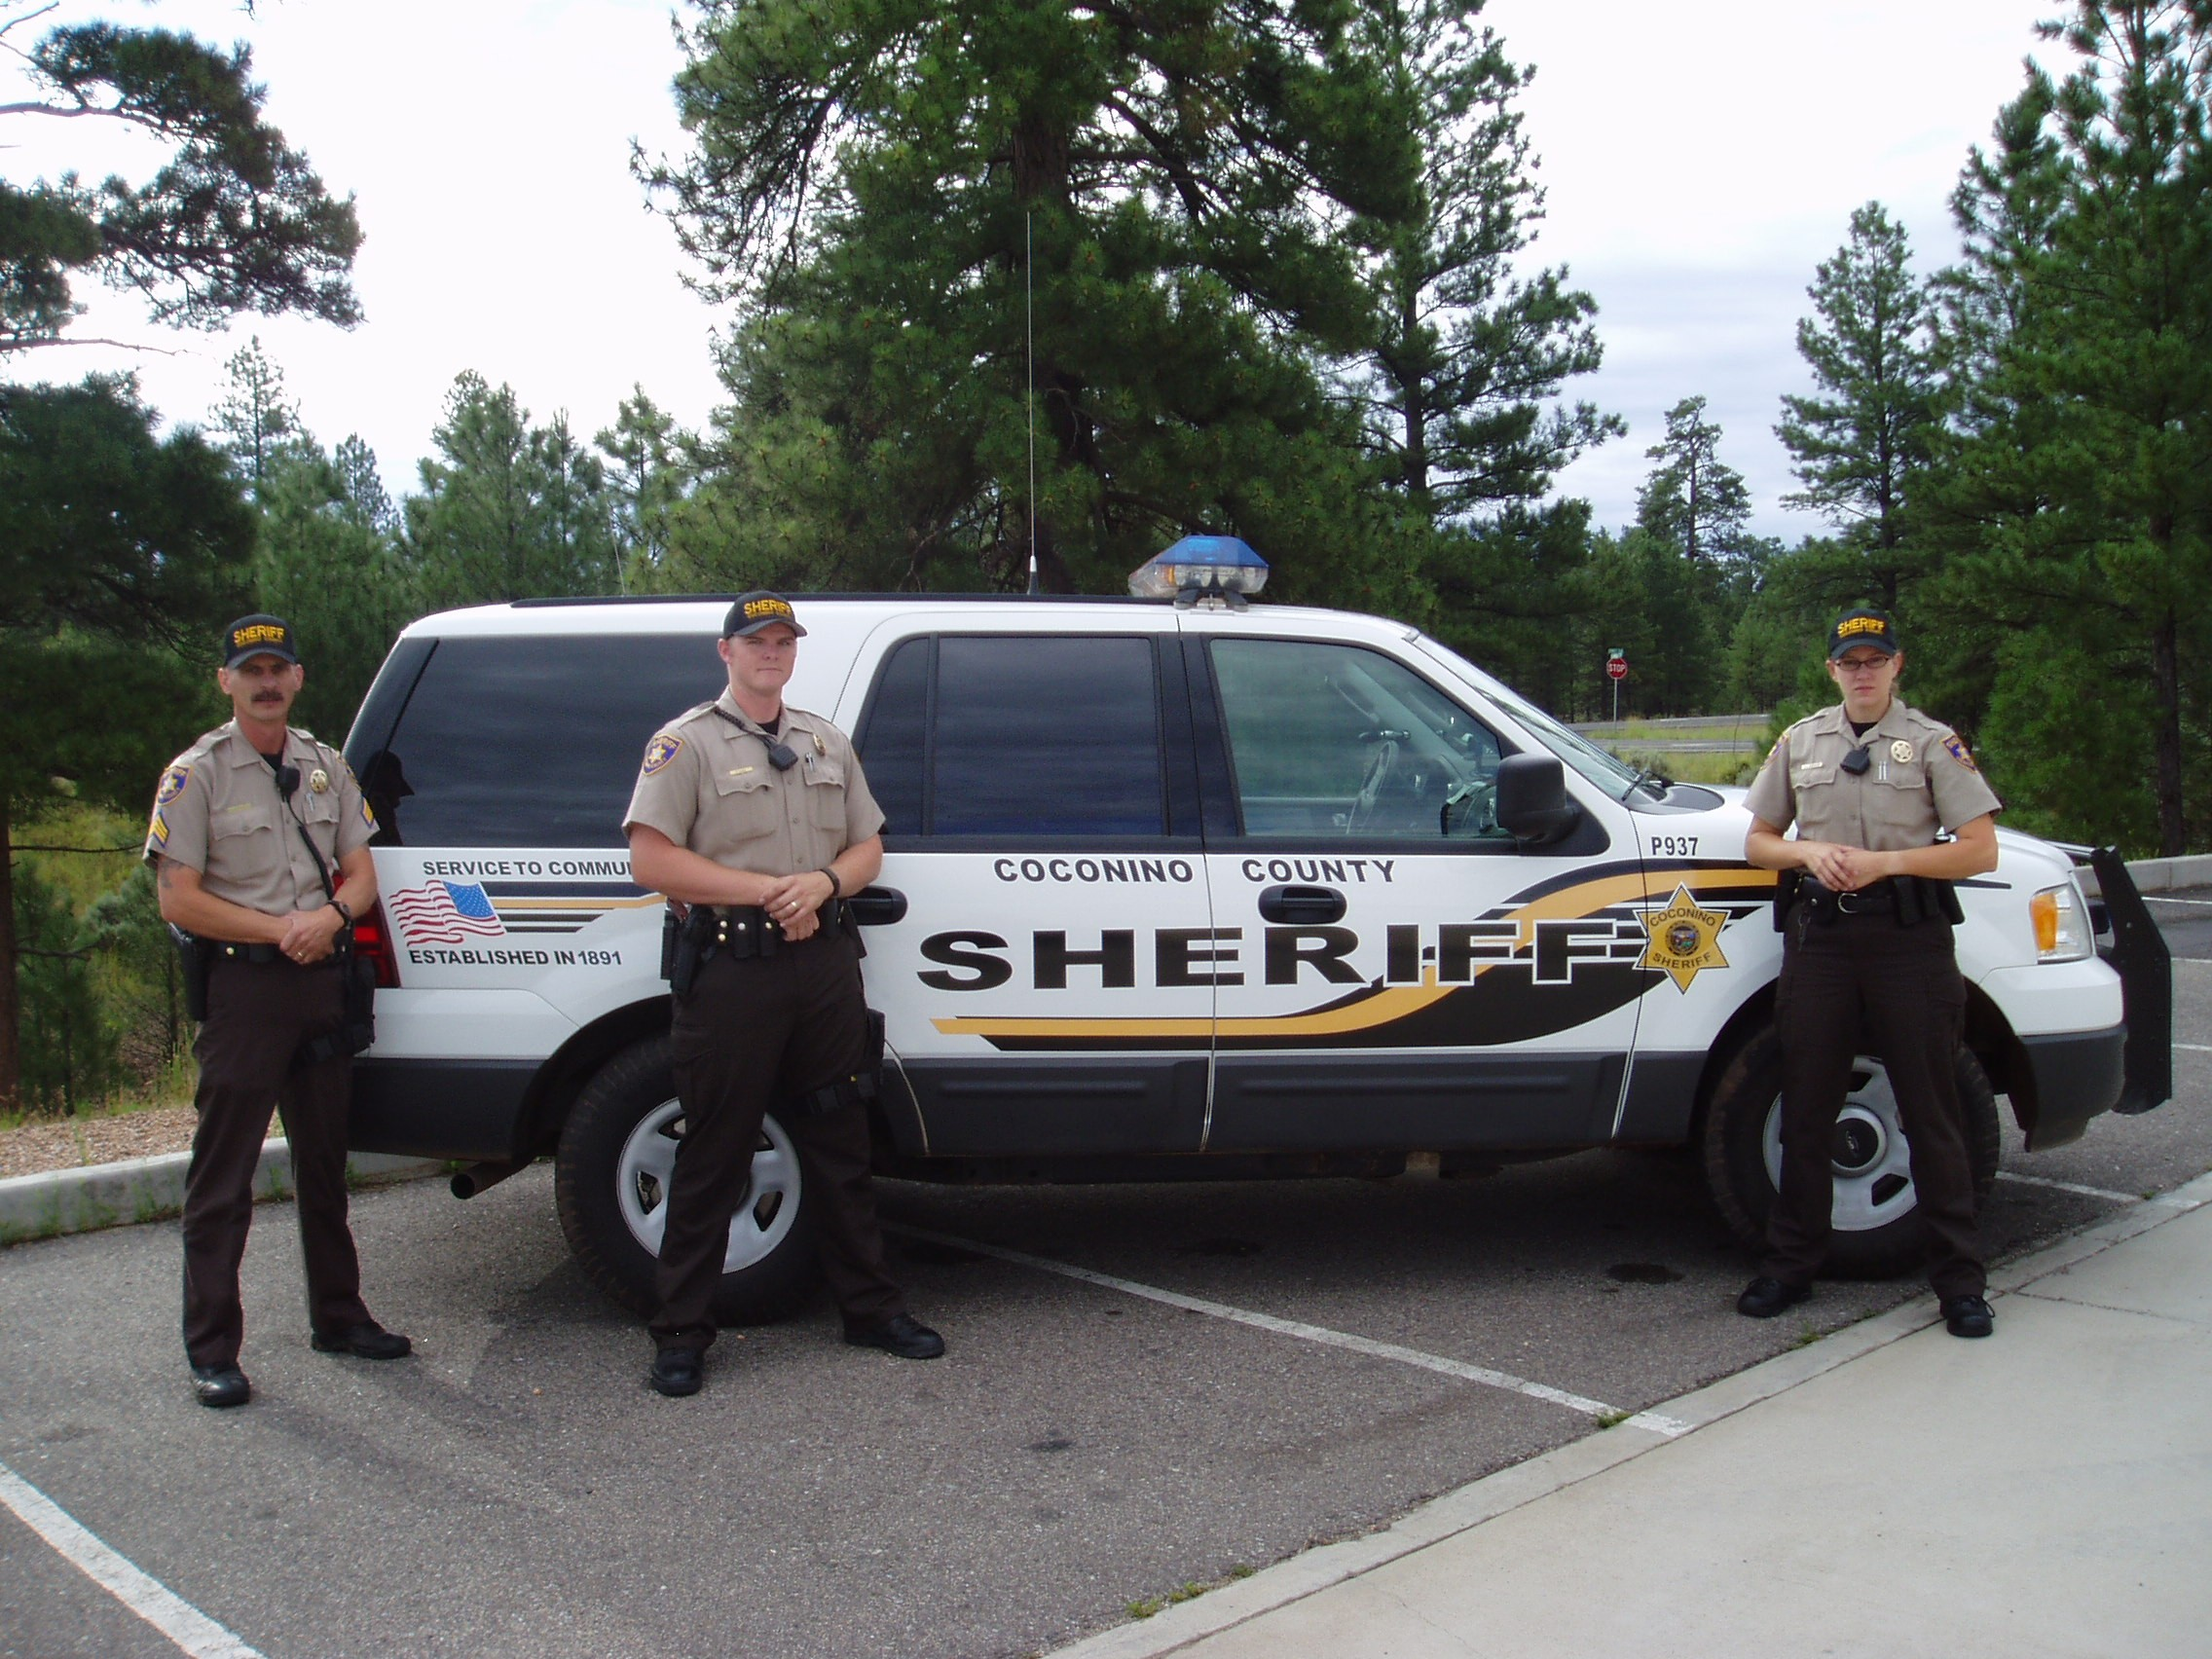 Coconino County Sheriff Office vehicle